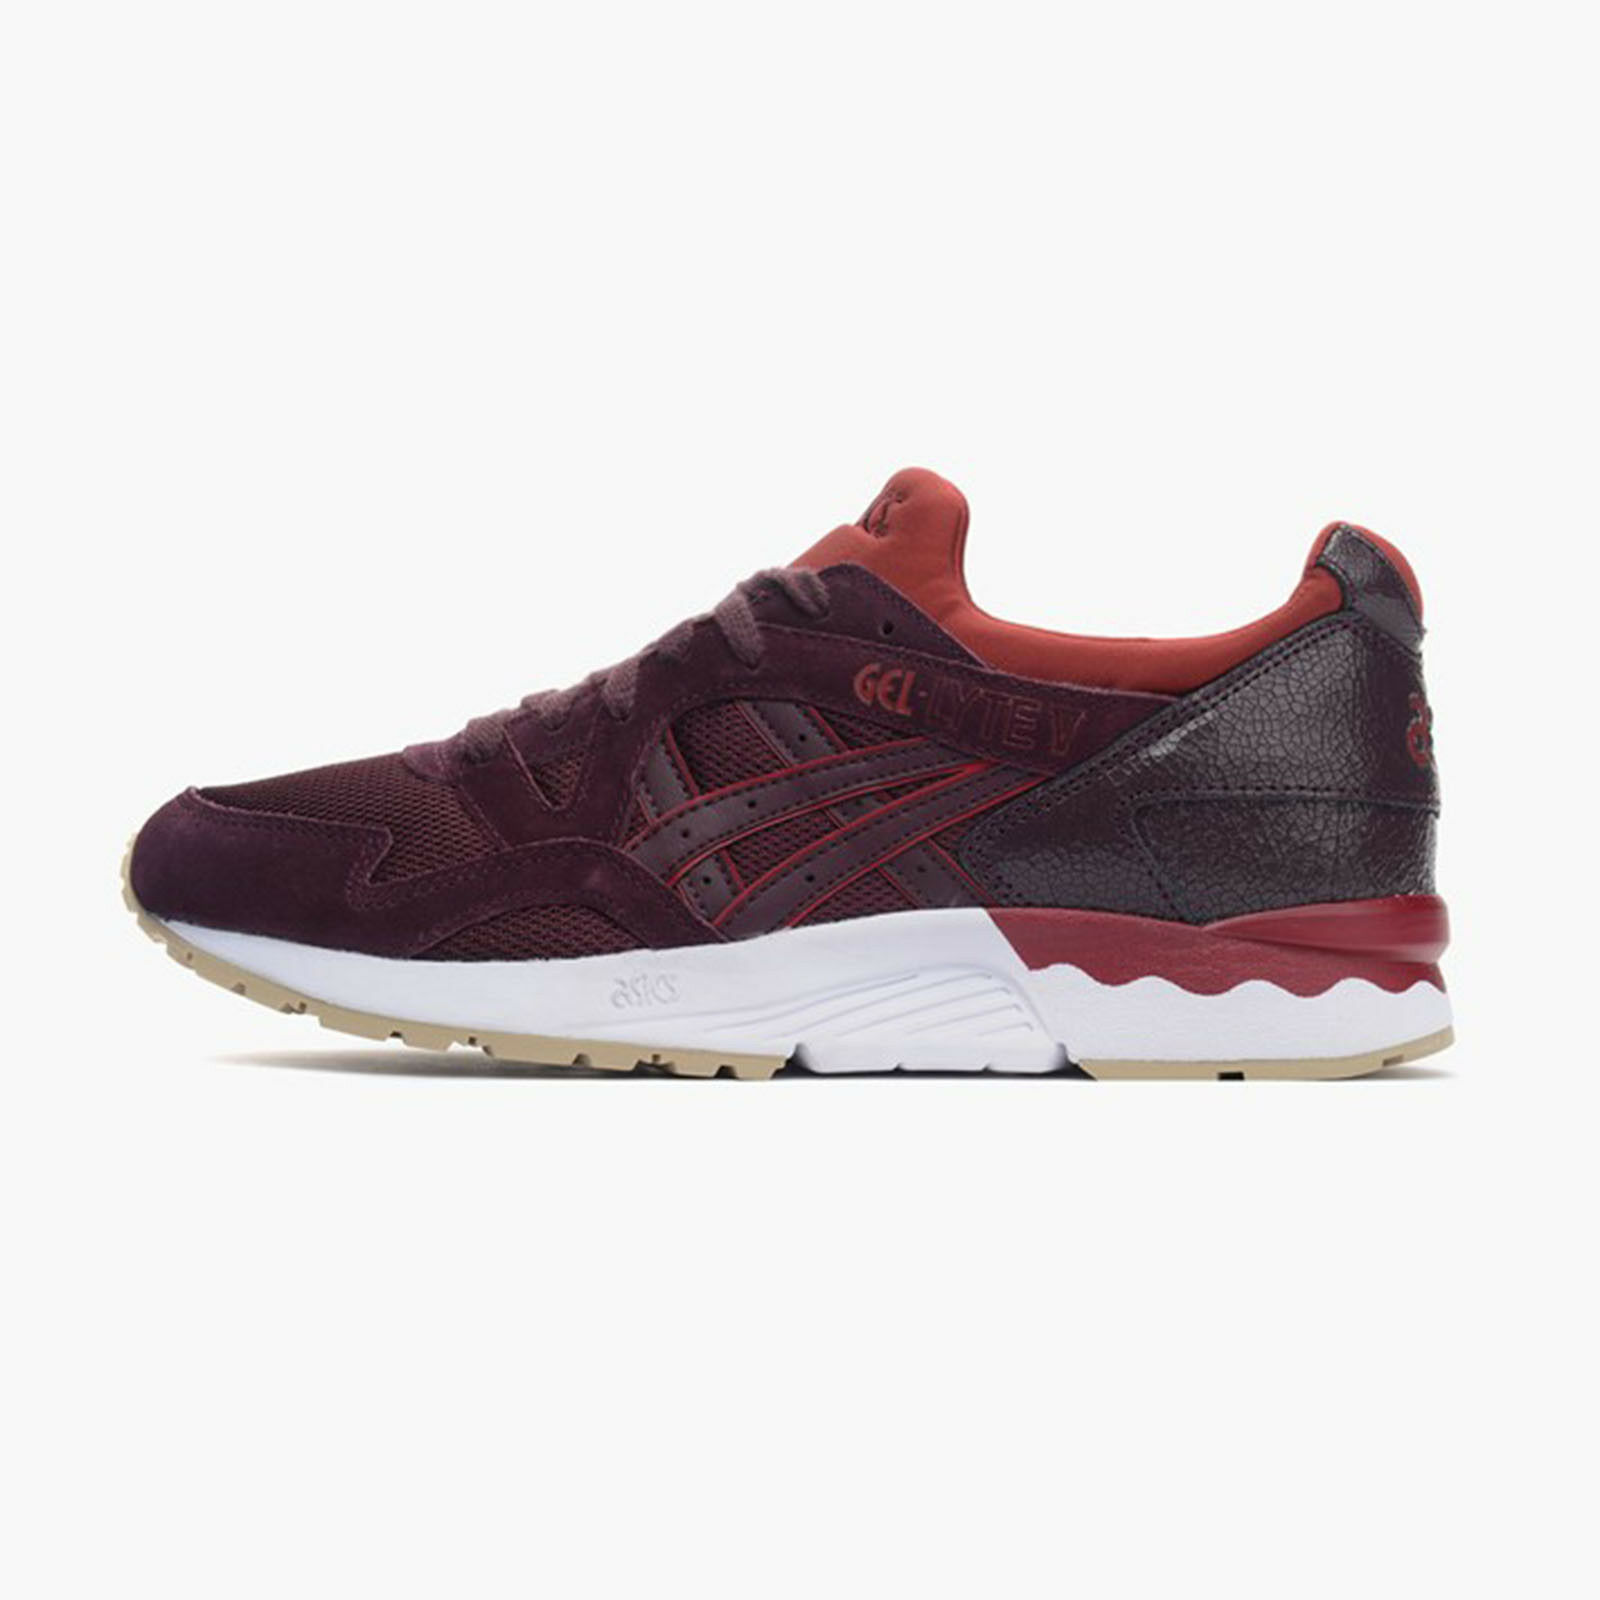 Asics Tiger GEL-Lyte V [H6Q4L-5252] Men Casual shoes Rioja Red